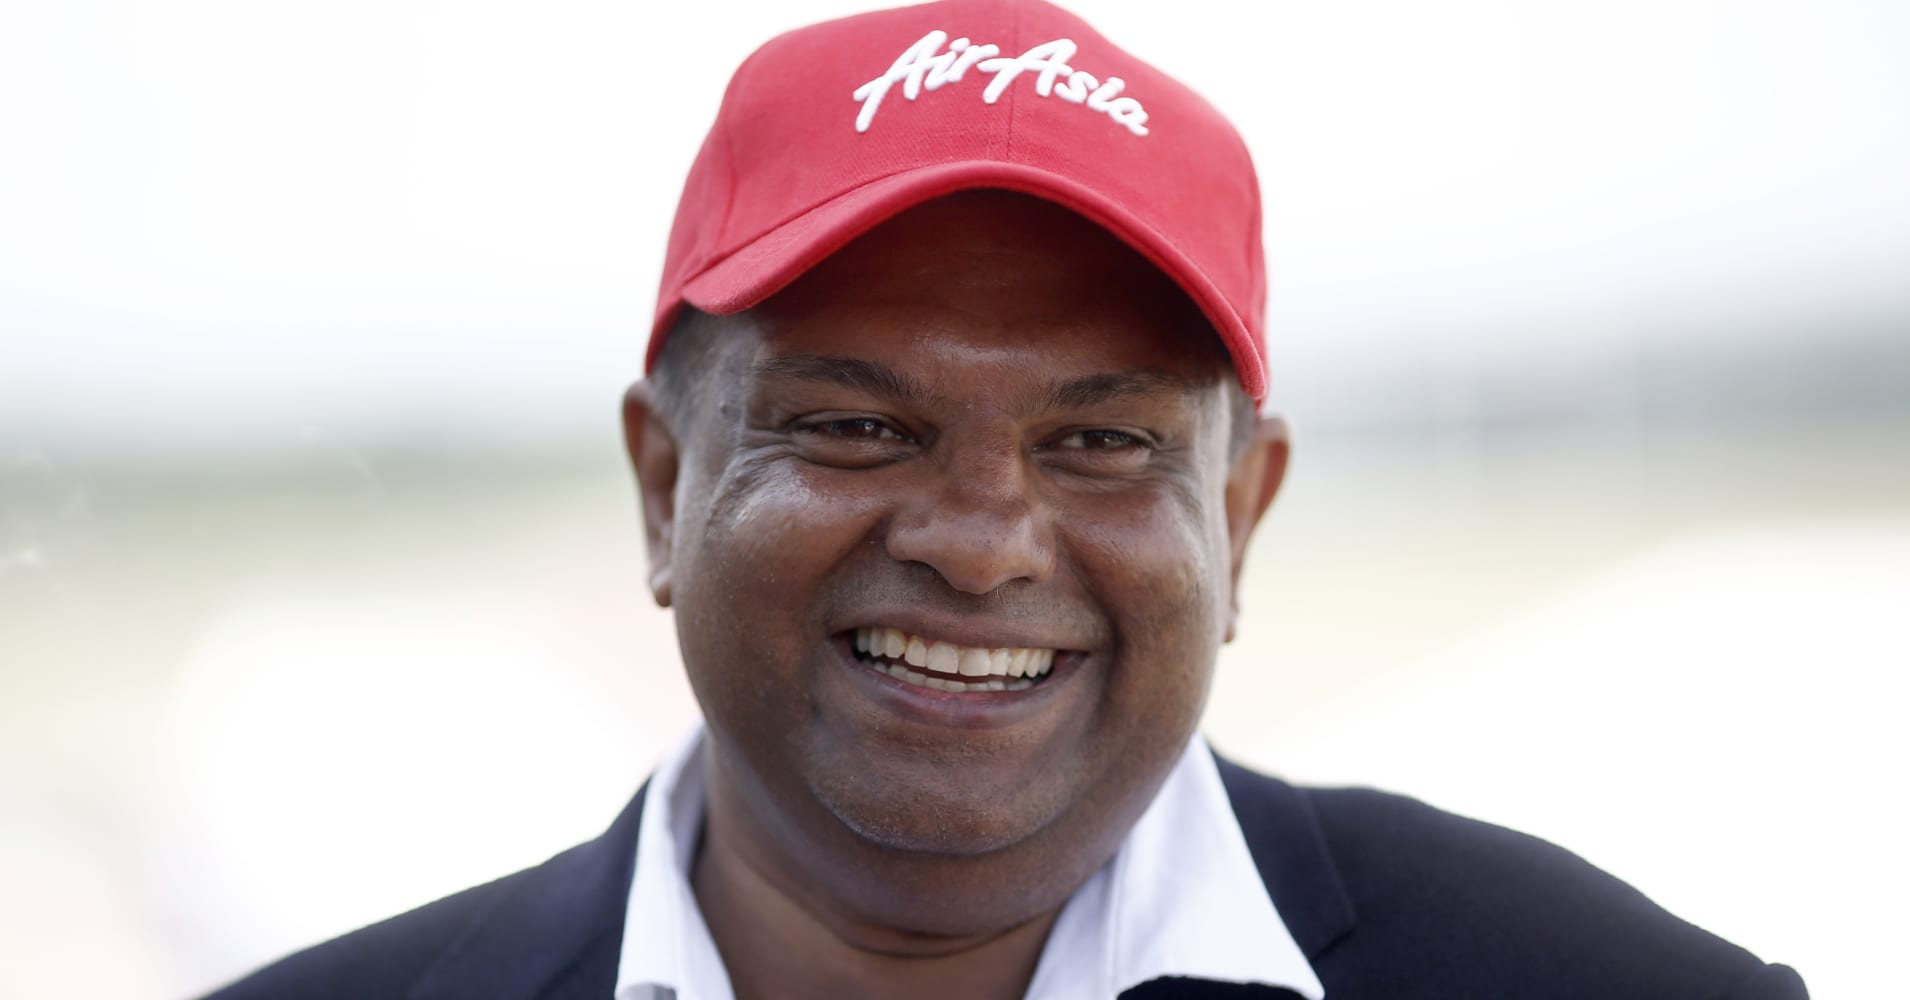 The skill that helped AirAsia's CEO turn a $0.26 airline into a billion-dollar business